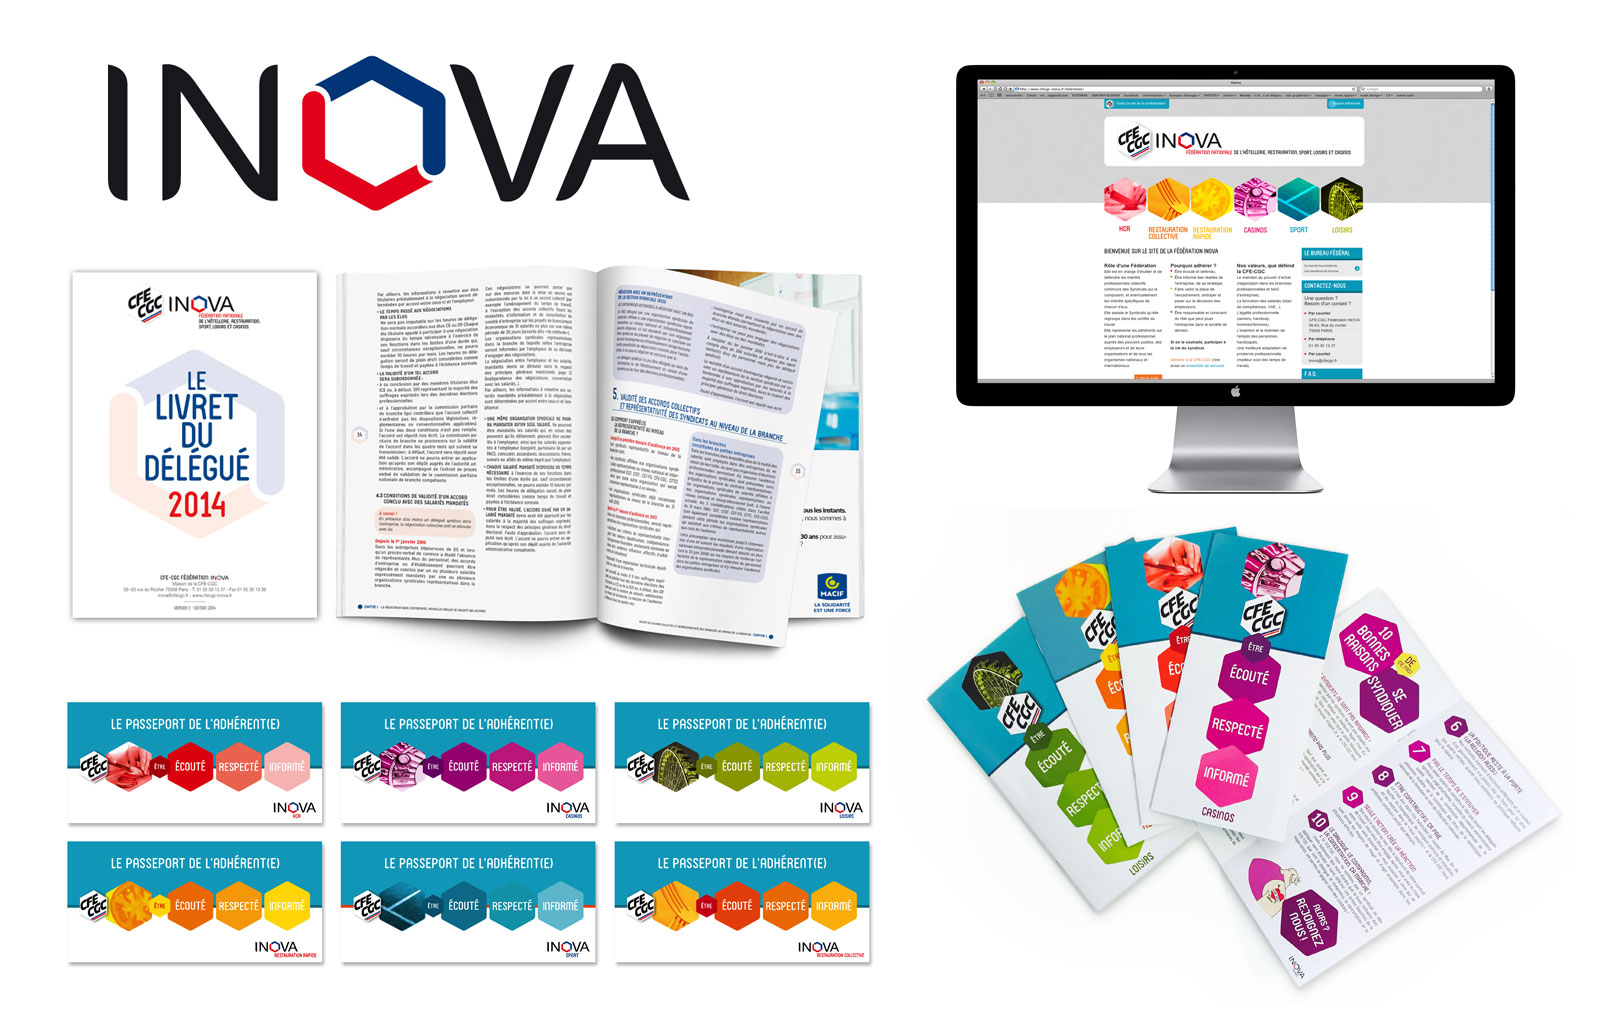 INOVA > Conception de la charte graphique, du logo, webdesign et divers documents print (livrets, guide syndical...)